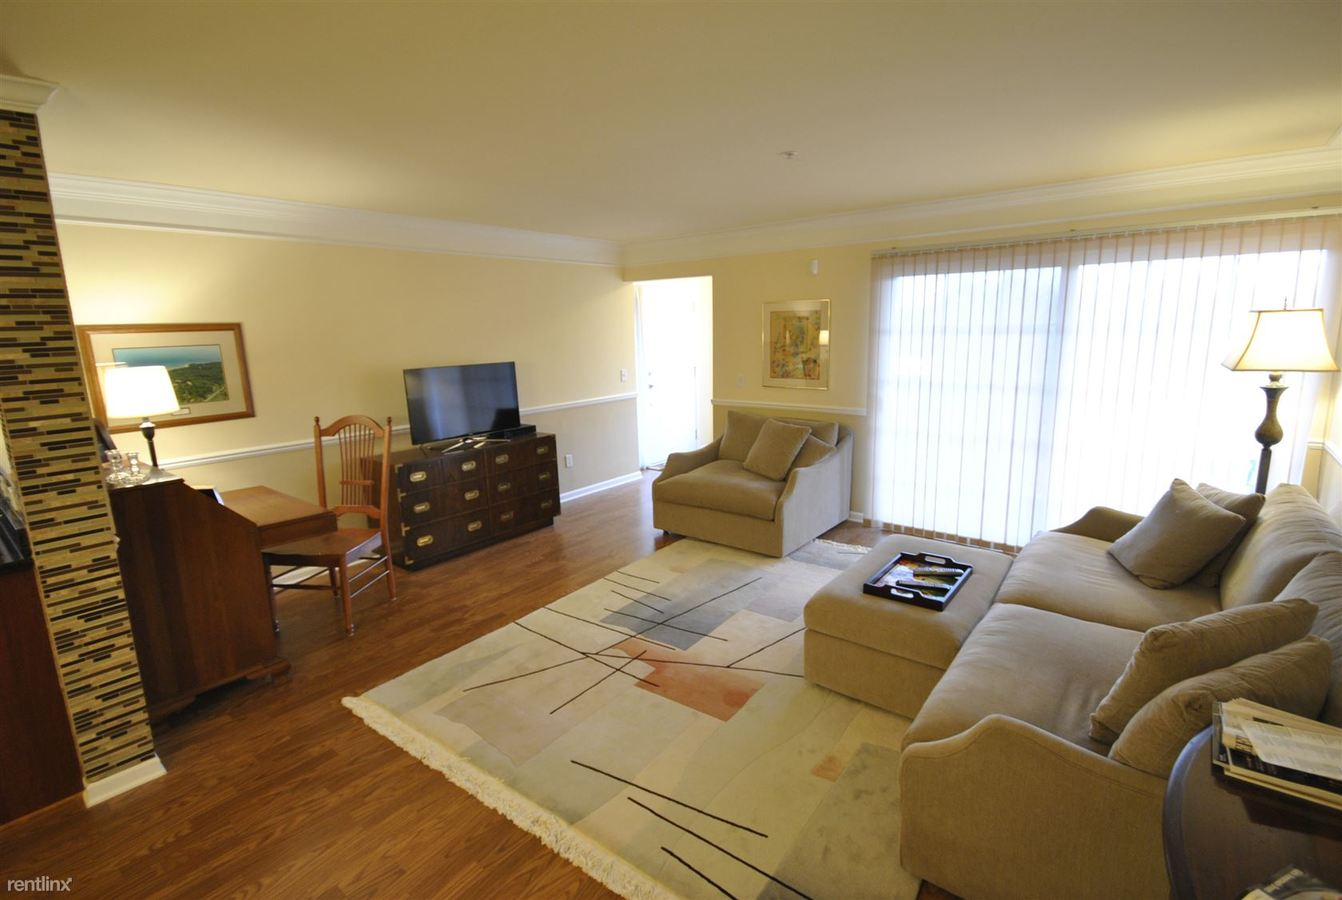 2 Bedrooms 2 Bathrooms House for rent at 124 W. Oakbrook 4 Month Corporate Housing Lease in Ann Arbor, MI